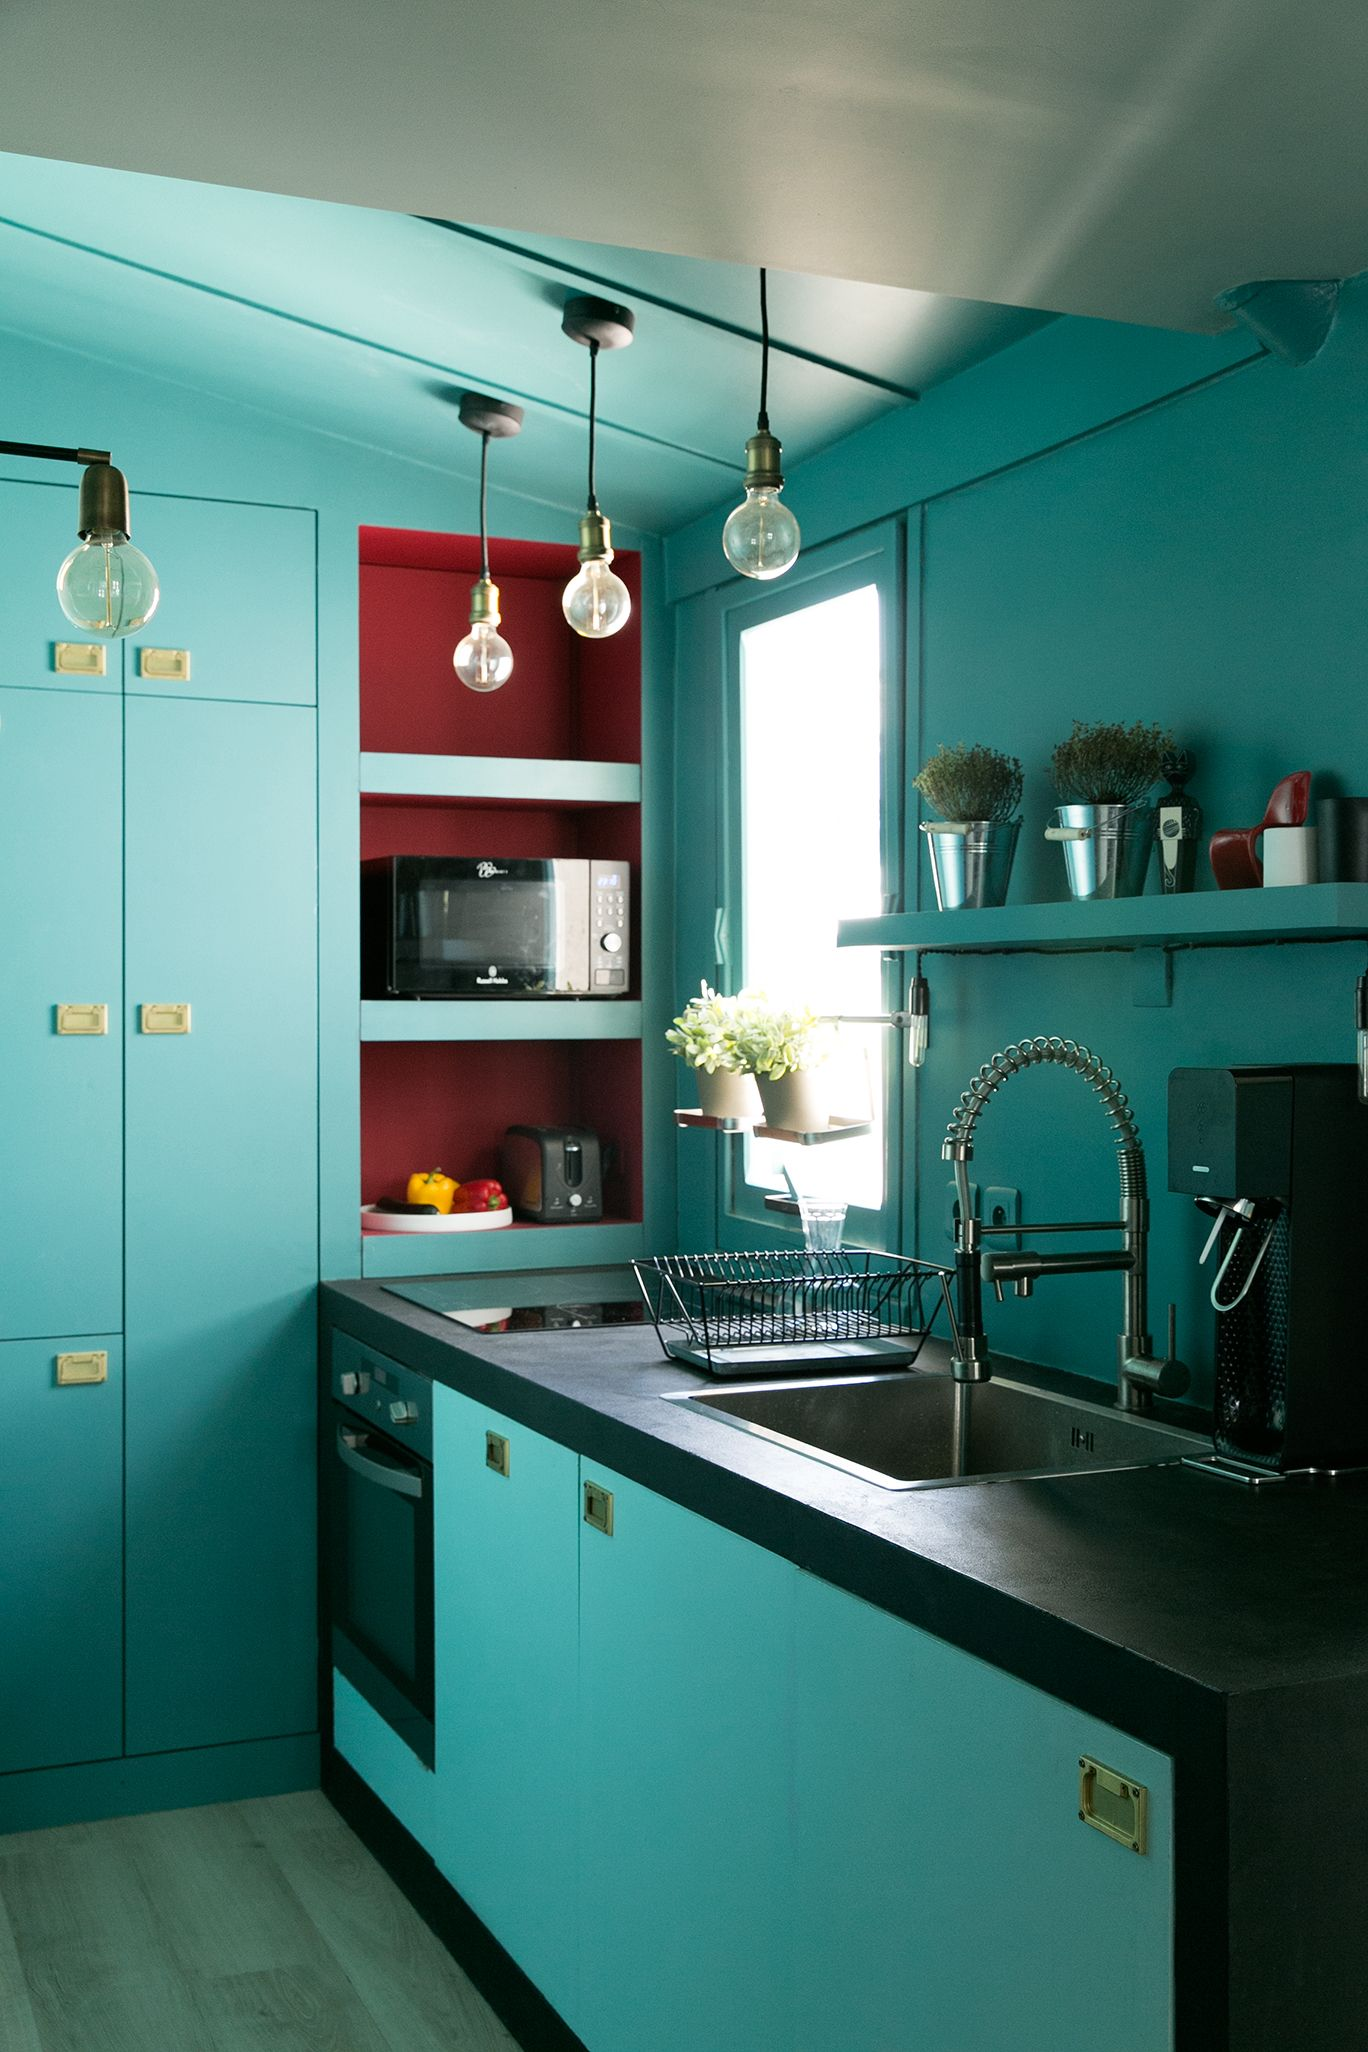 insanely cool all turquoise modern kitchen design modern kitchen design home decor kitchen on t kitchen ideas id=14581